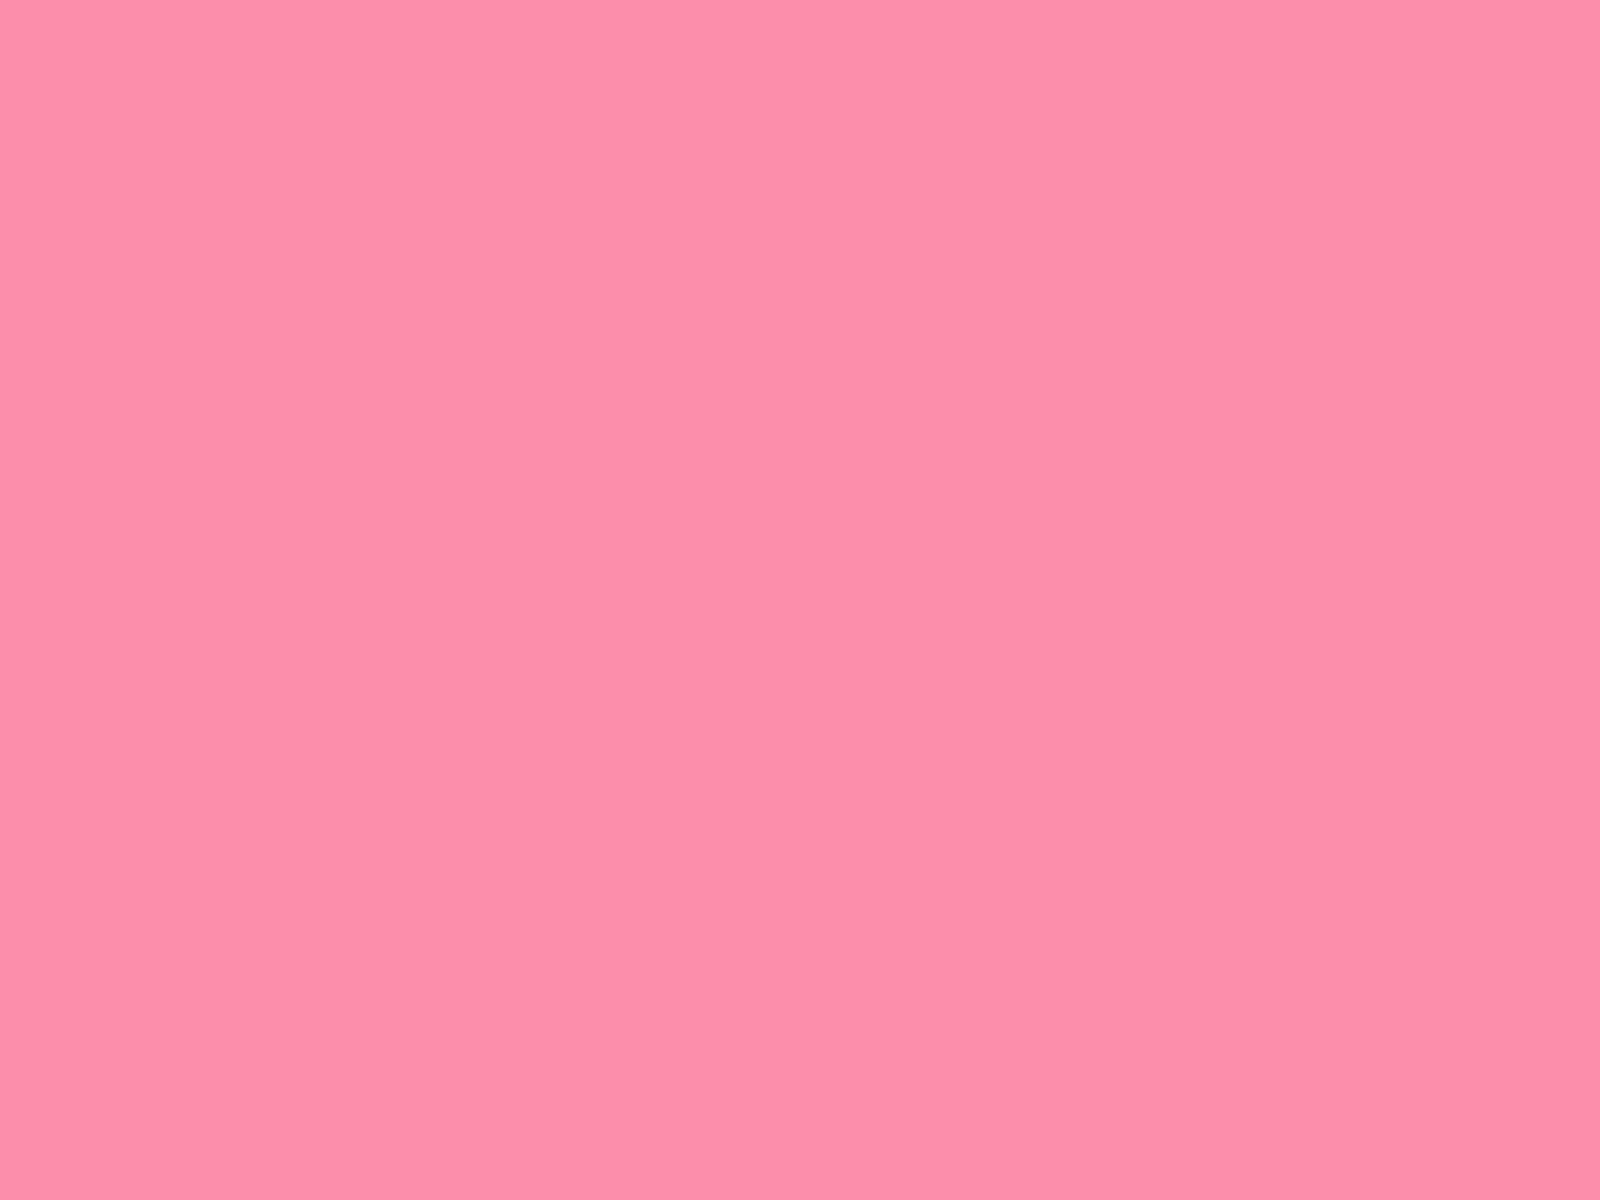 1600x1200 Flamingo Pink Solid Color Background